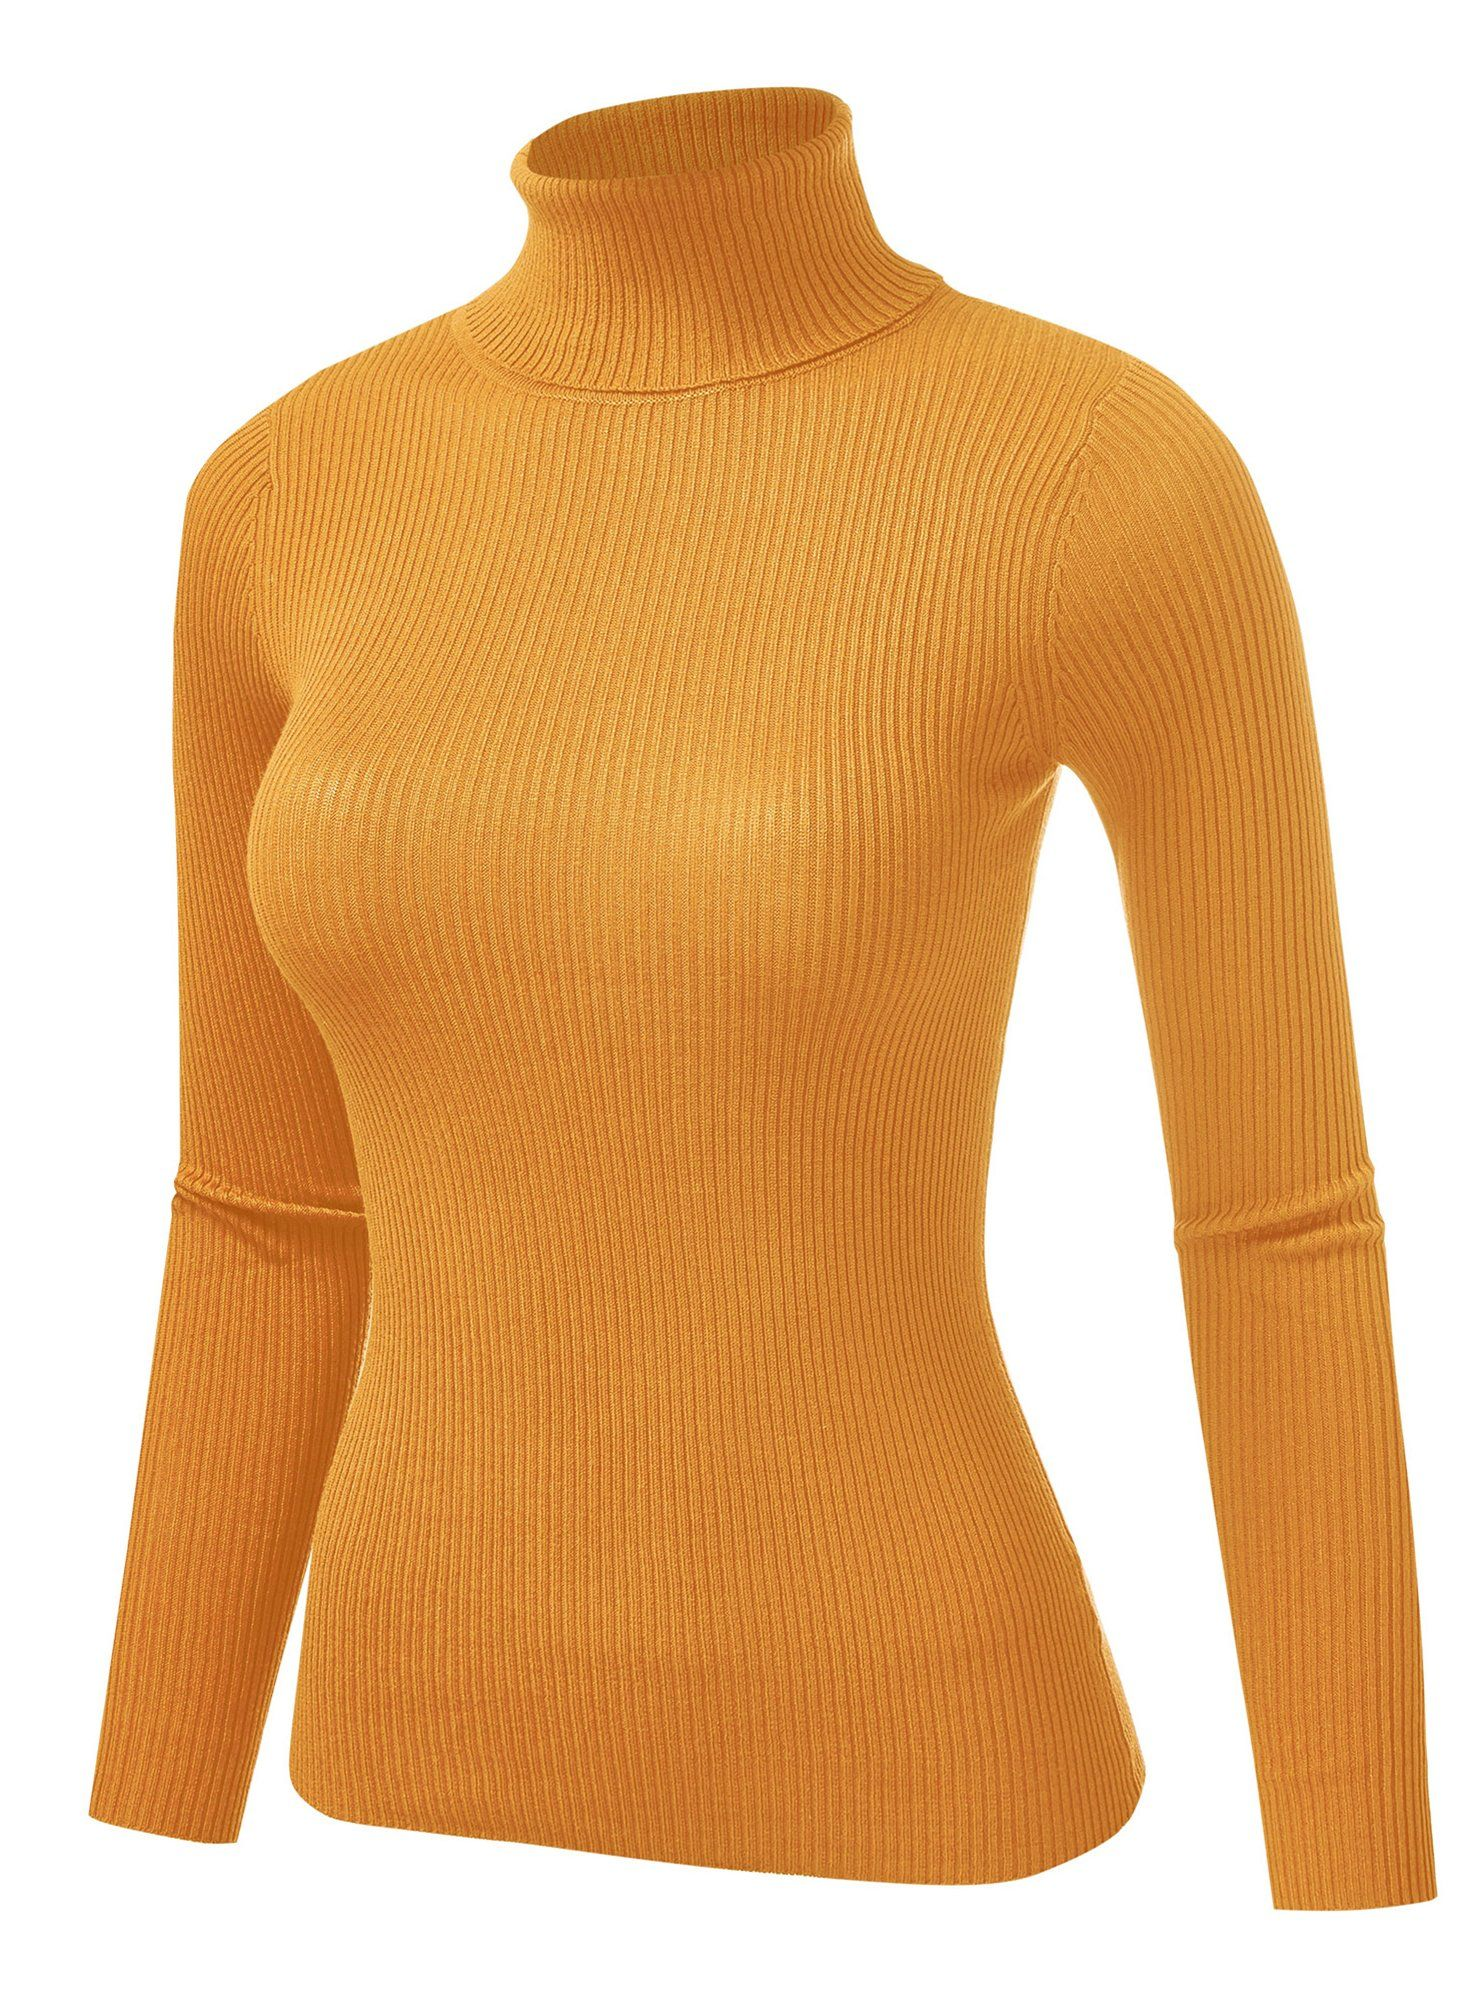 Women's Ribbed Knit Texture High Neck Long Sleeve Pullover Sweater (FWT1120) - Mustard / M